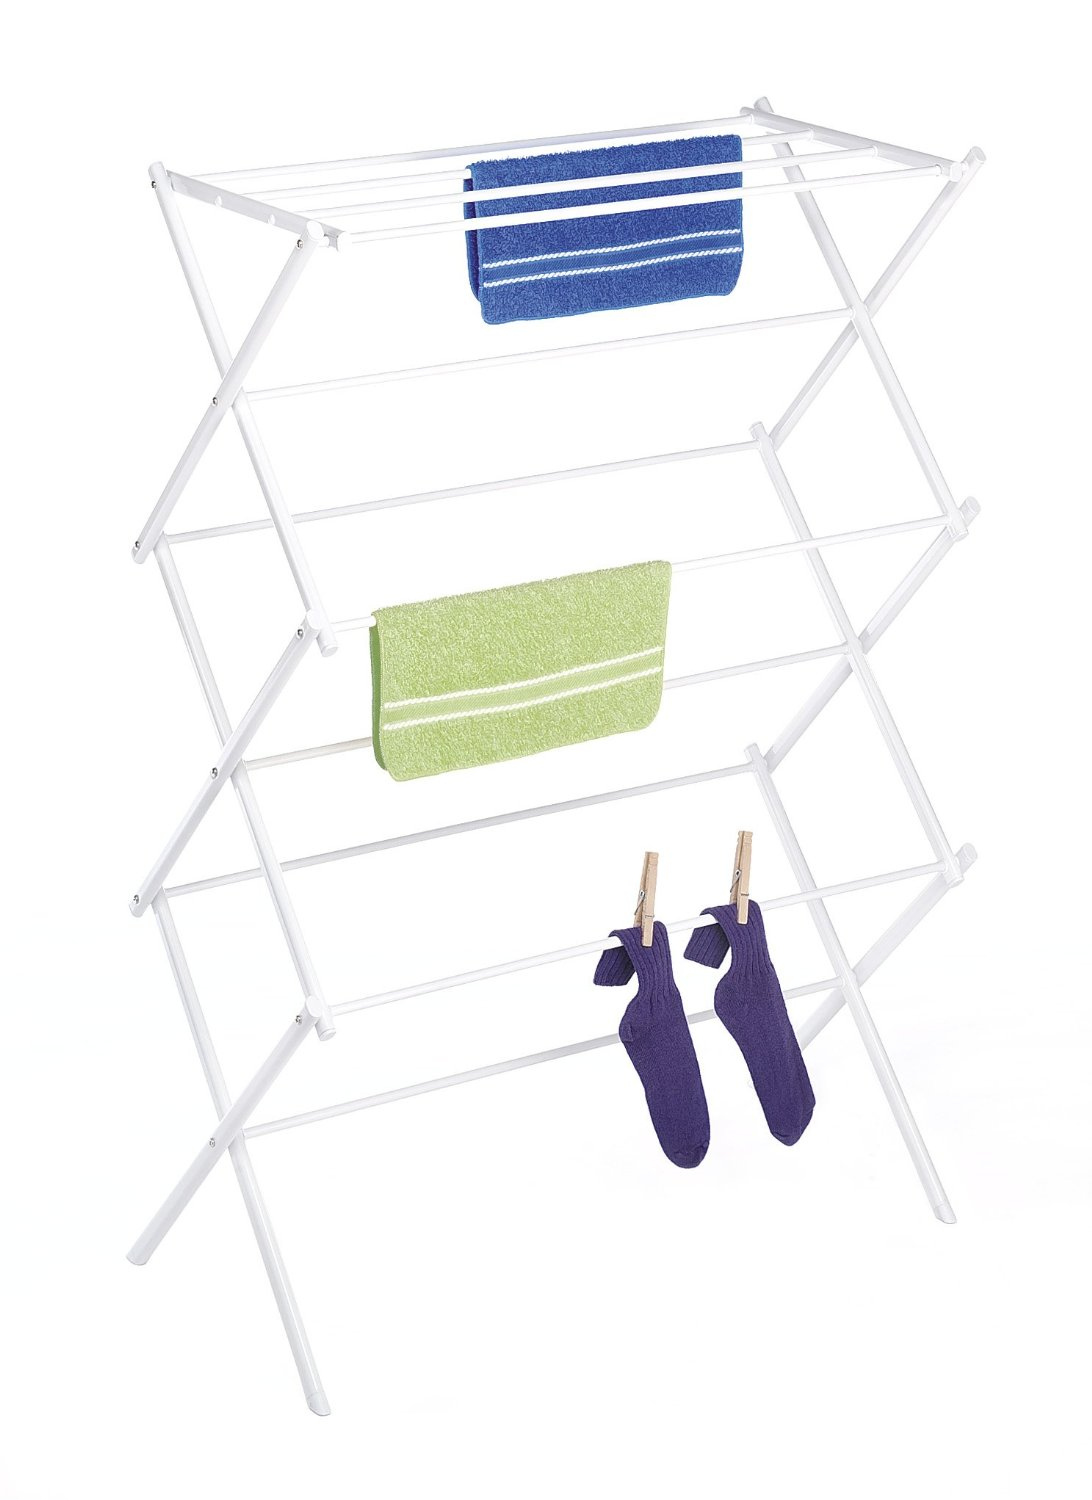 Folding Clothes Drying Rack, White, Rust-Proof Guarantee, Premium Quality 11 Hanging Bars, USA, Brand Whitmor by